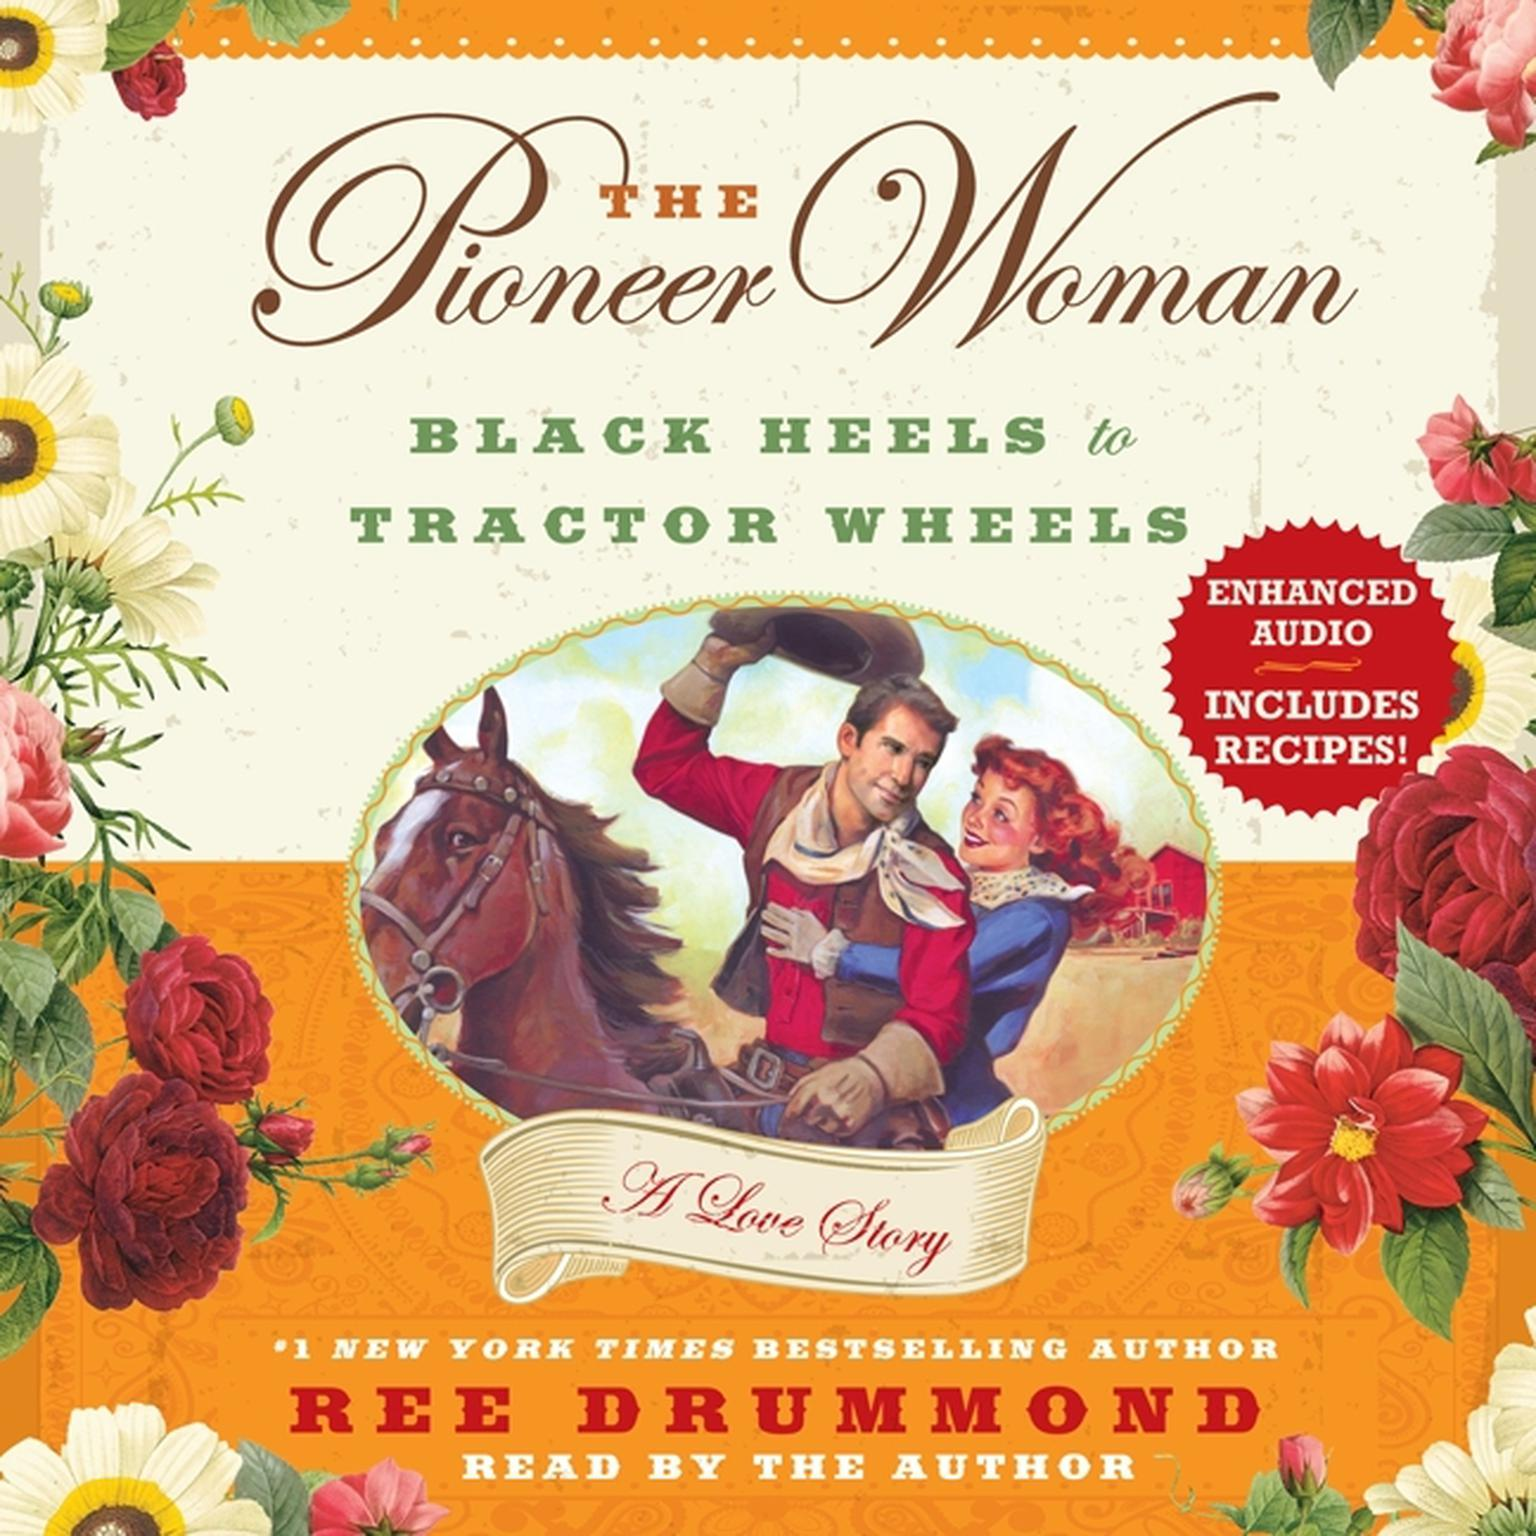 Printable The Pioneer Woman: Black Heels to Tractor Wheels—A Love Story Audiobook Cover Art